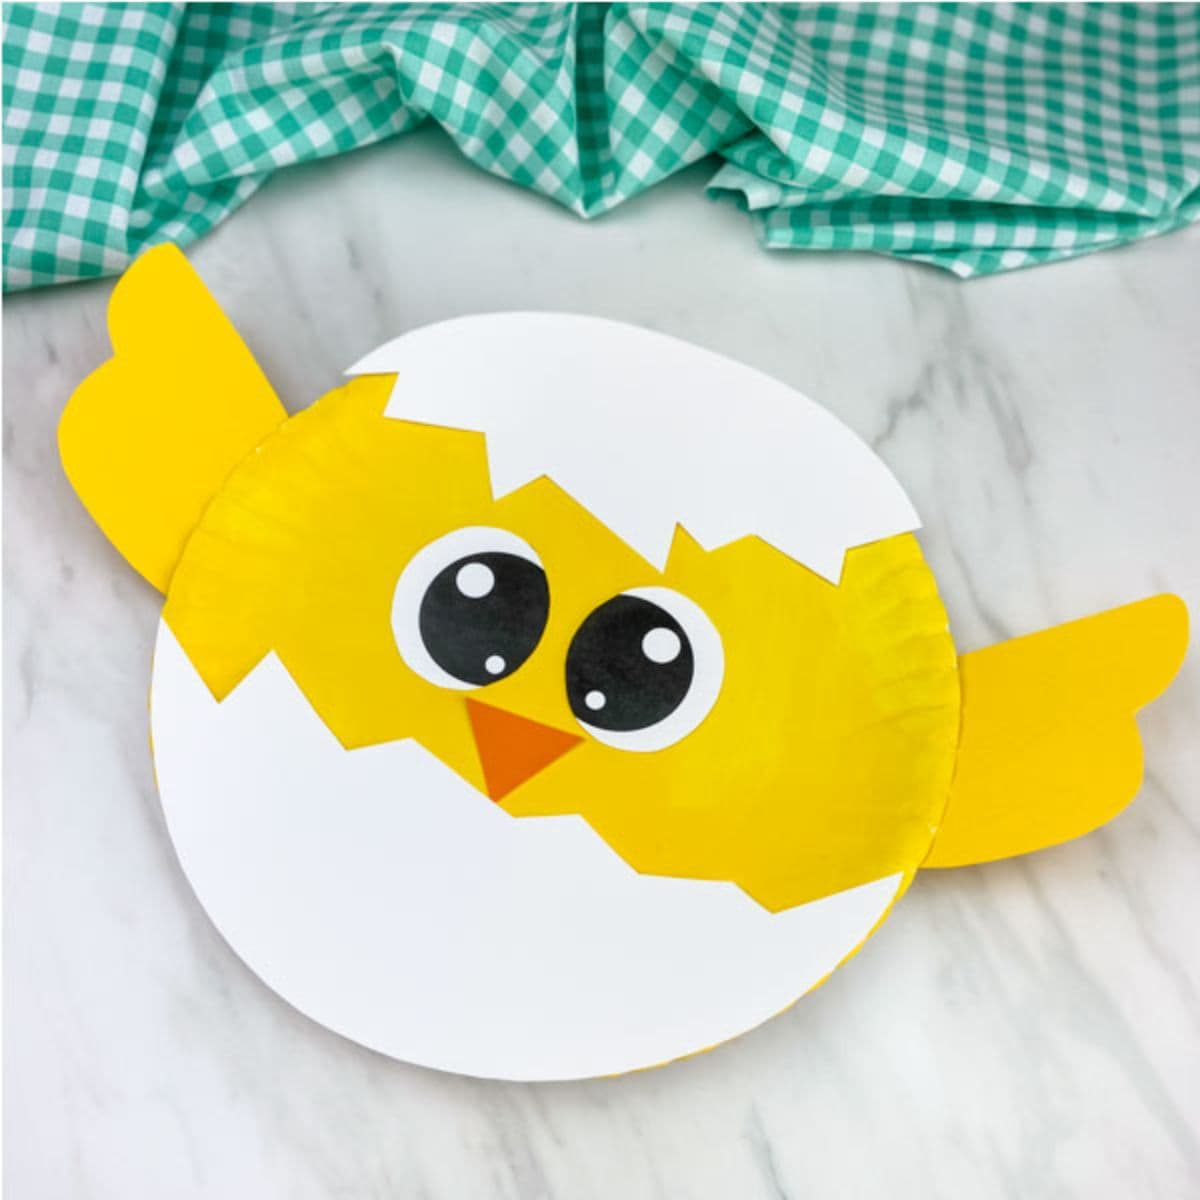 On a marble surface there is a yellow and white chick made out of a paper plate.